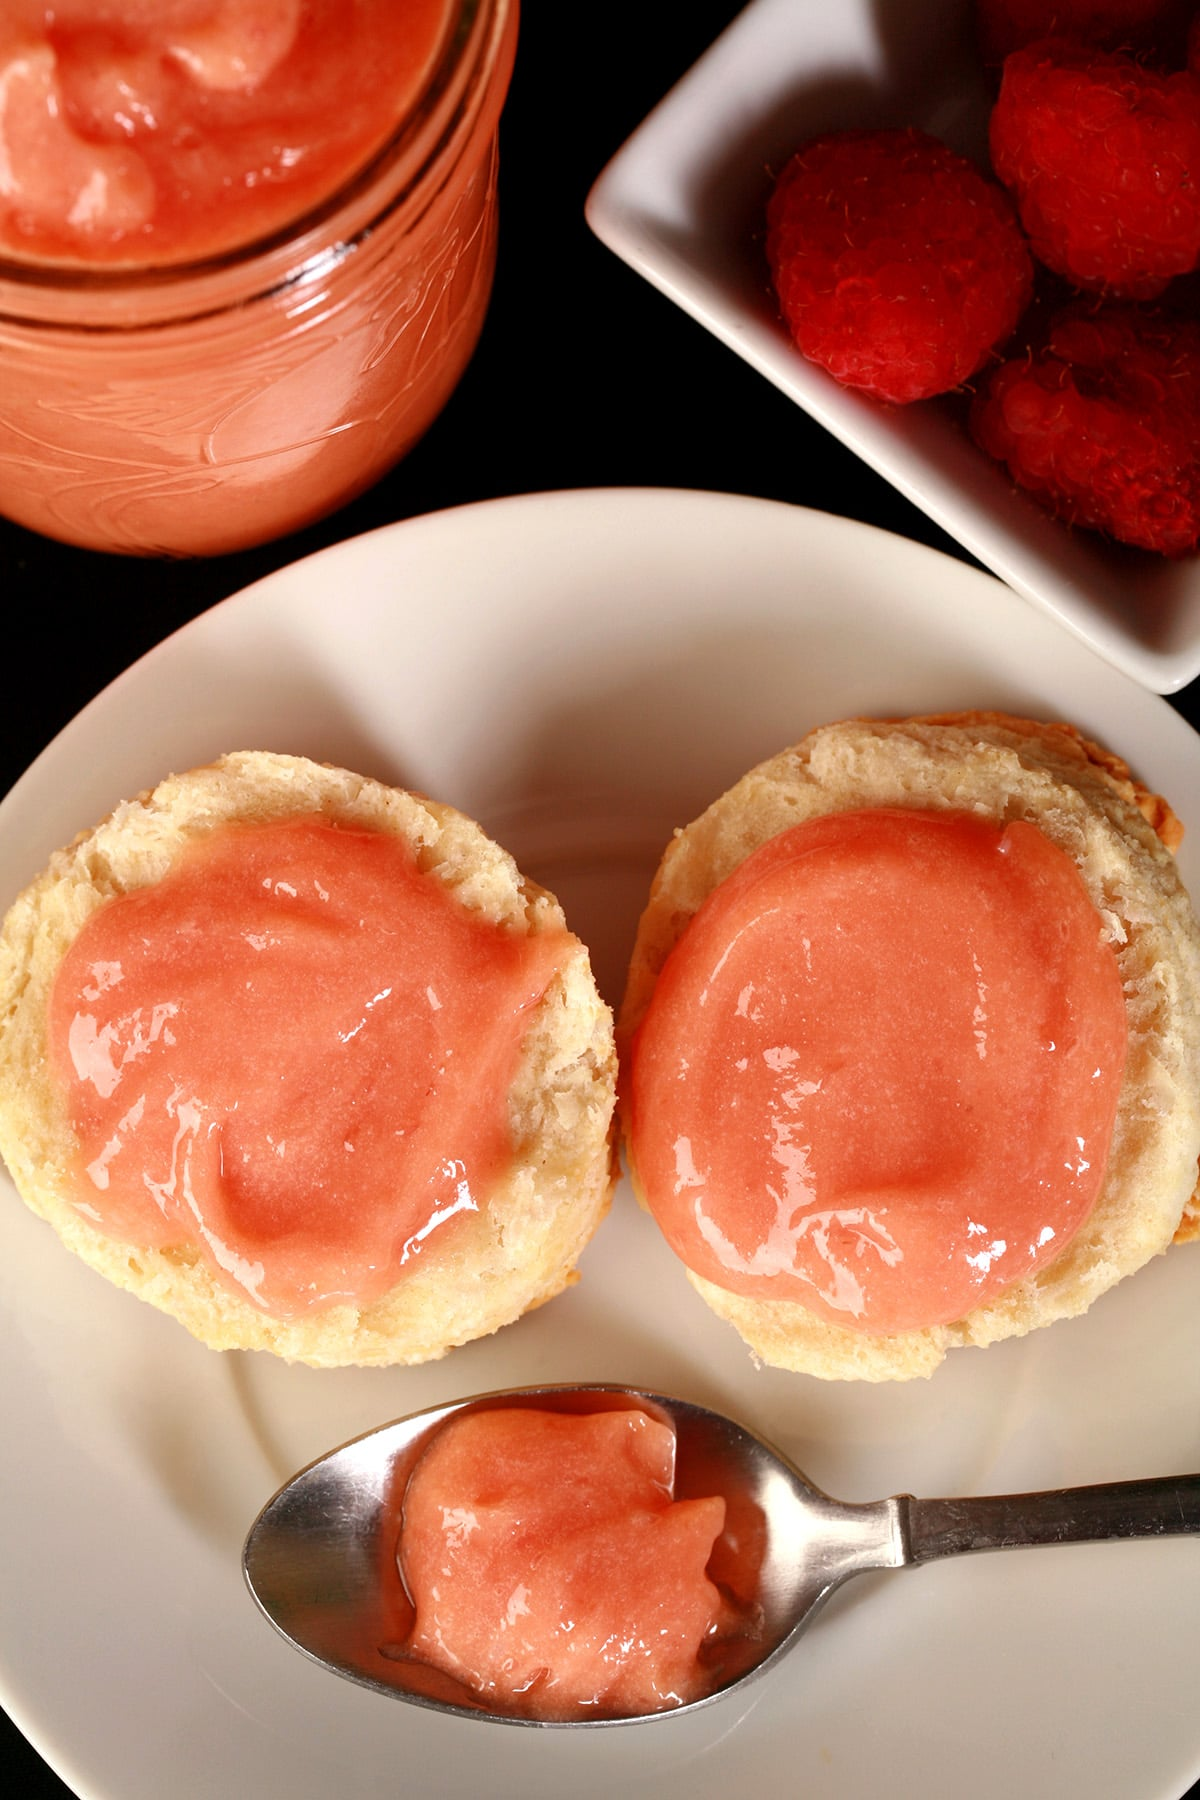 Two raspberry curd covered biscuits on a plate, along with a spoon of the pink curd.